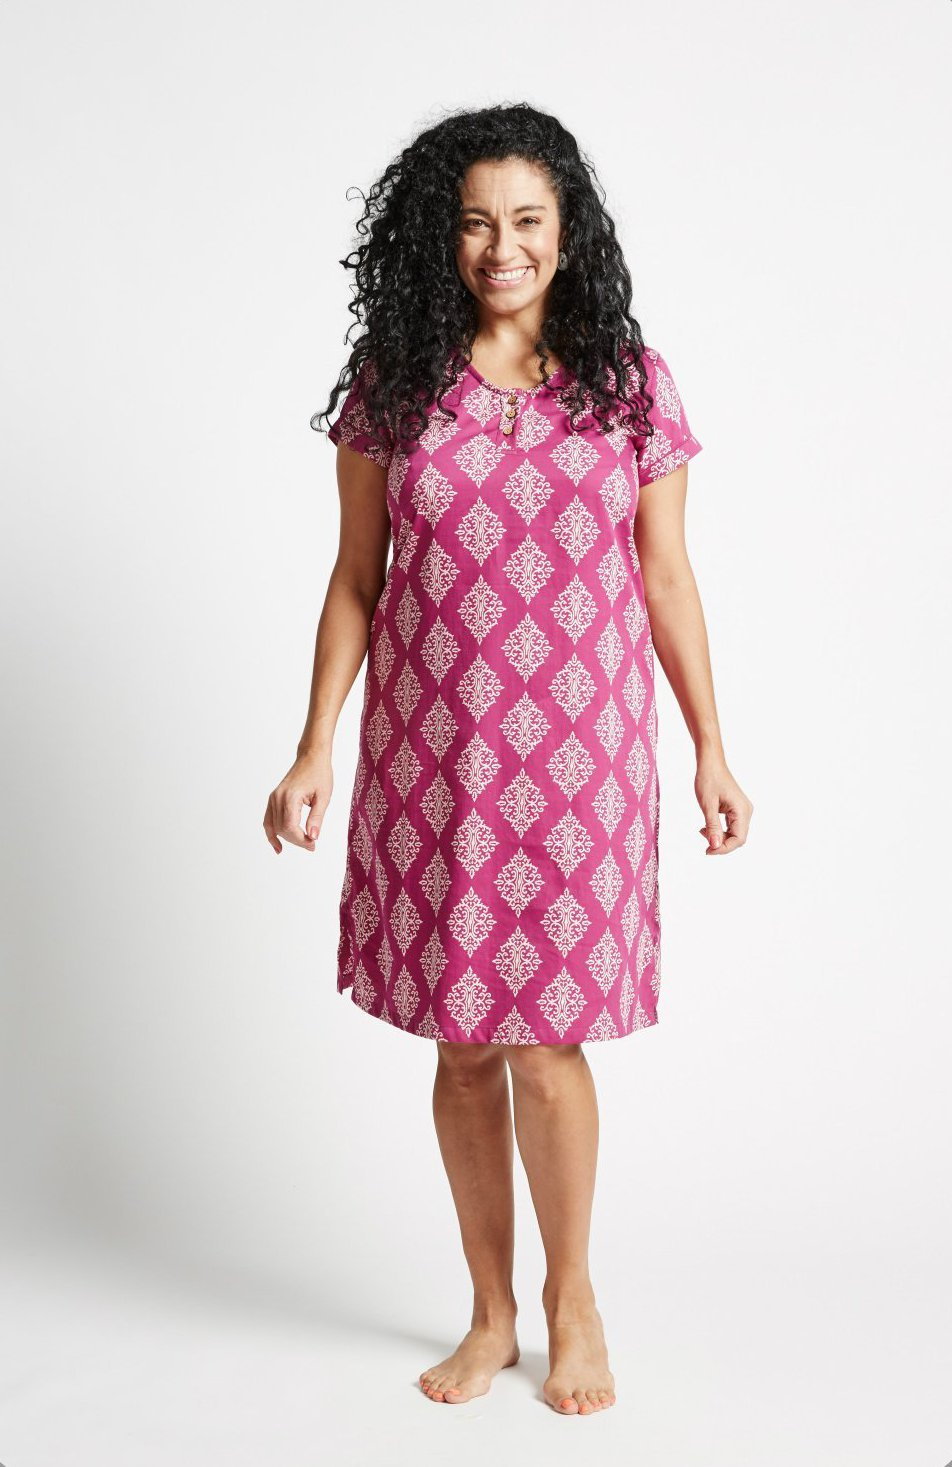 Women's Ethical Organic Cotton Pink Nightie